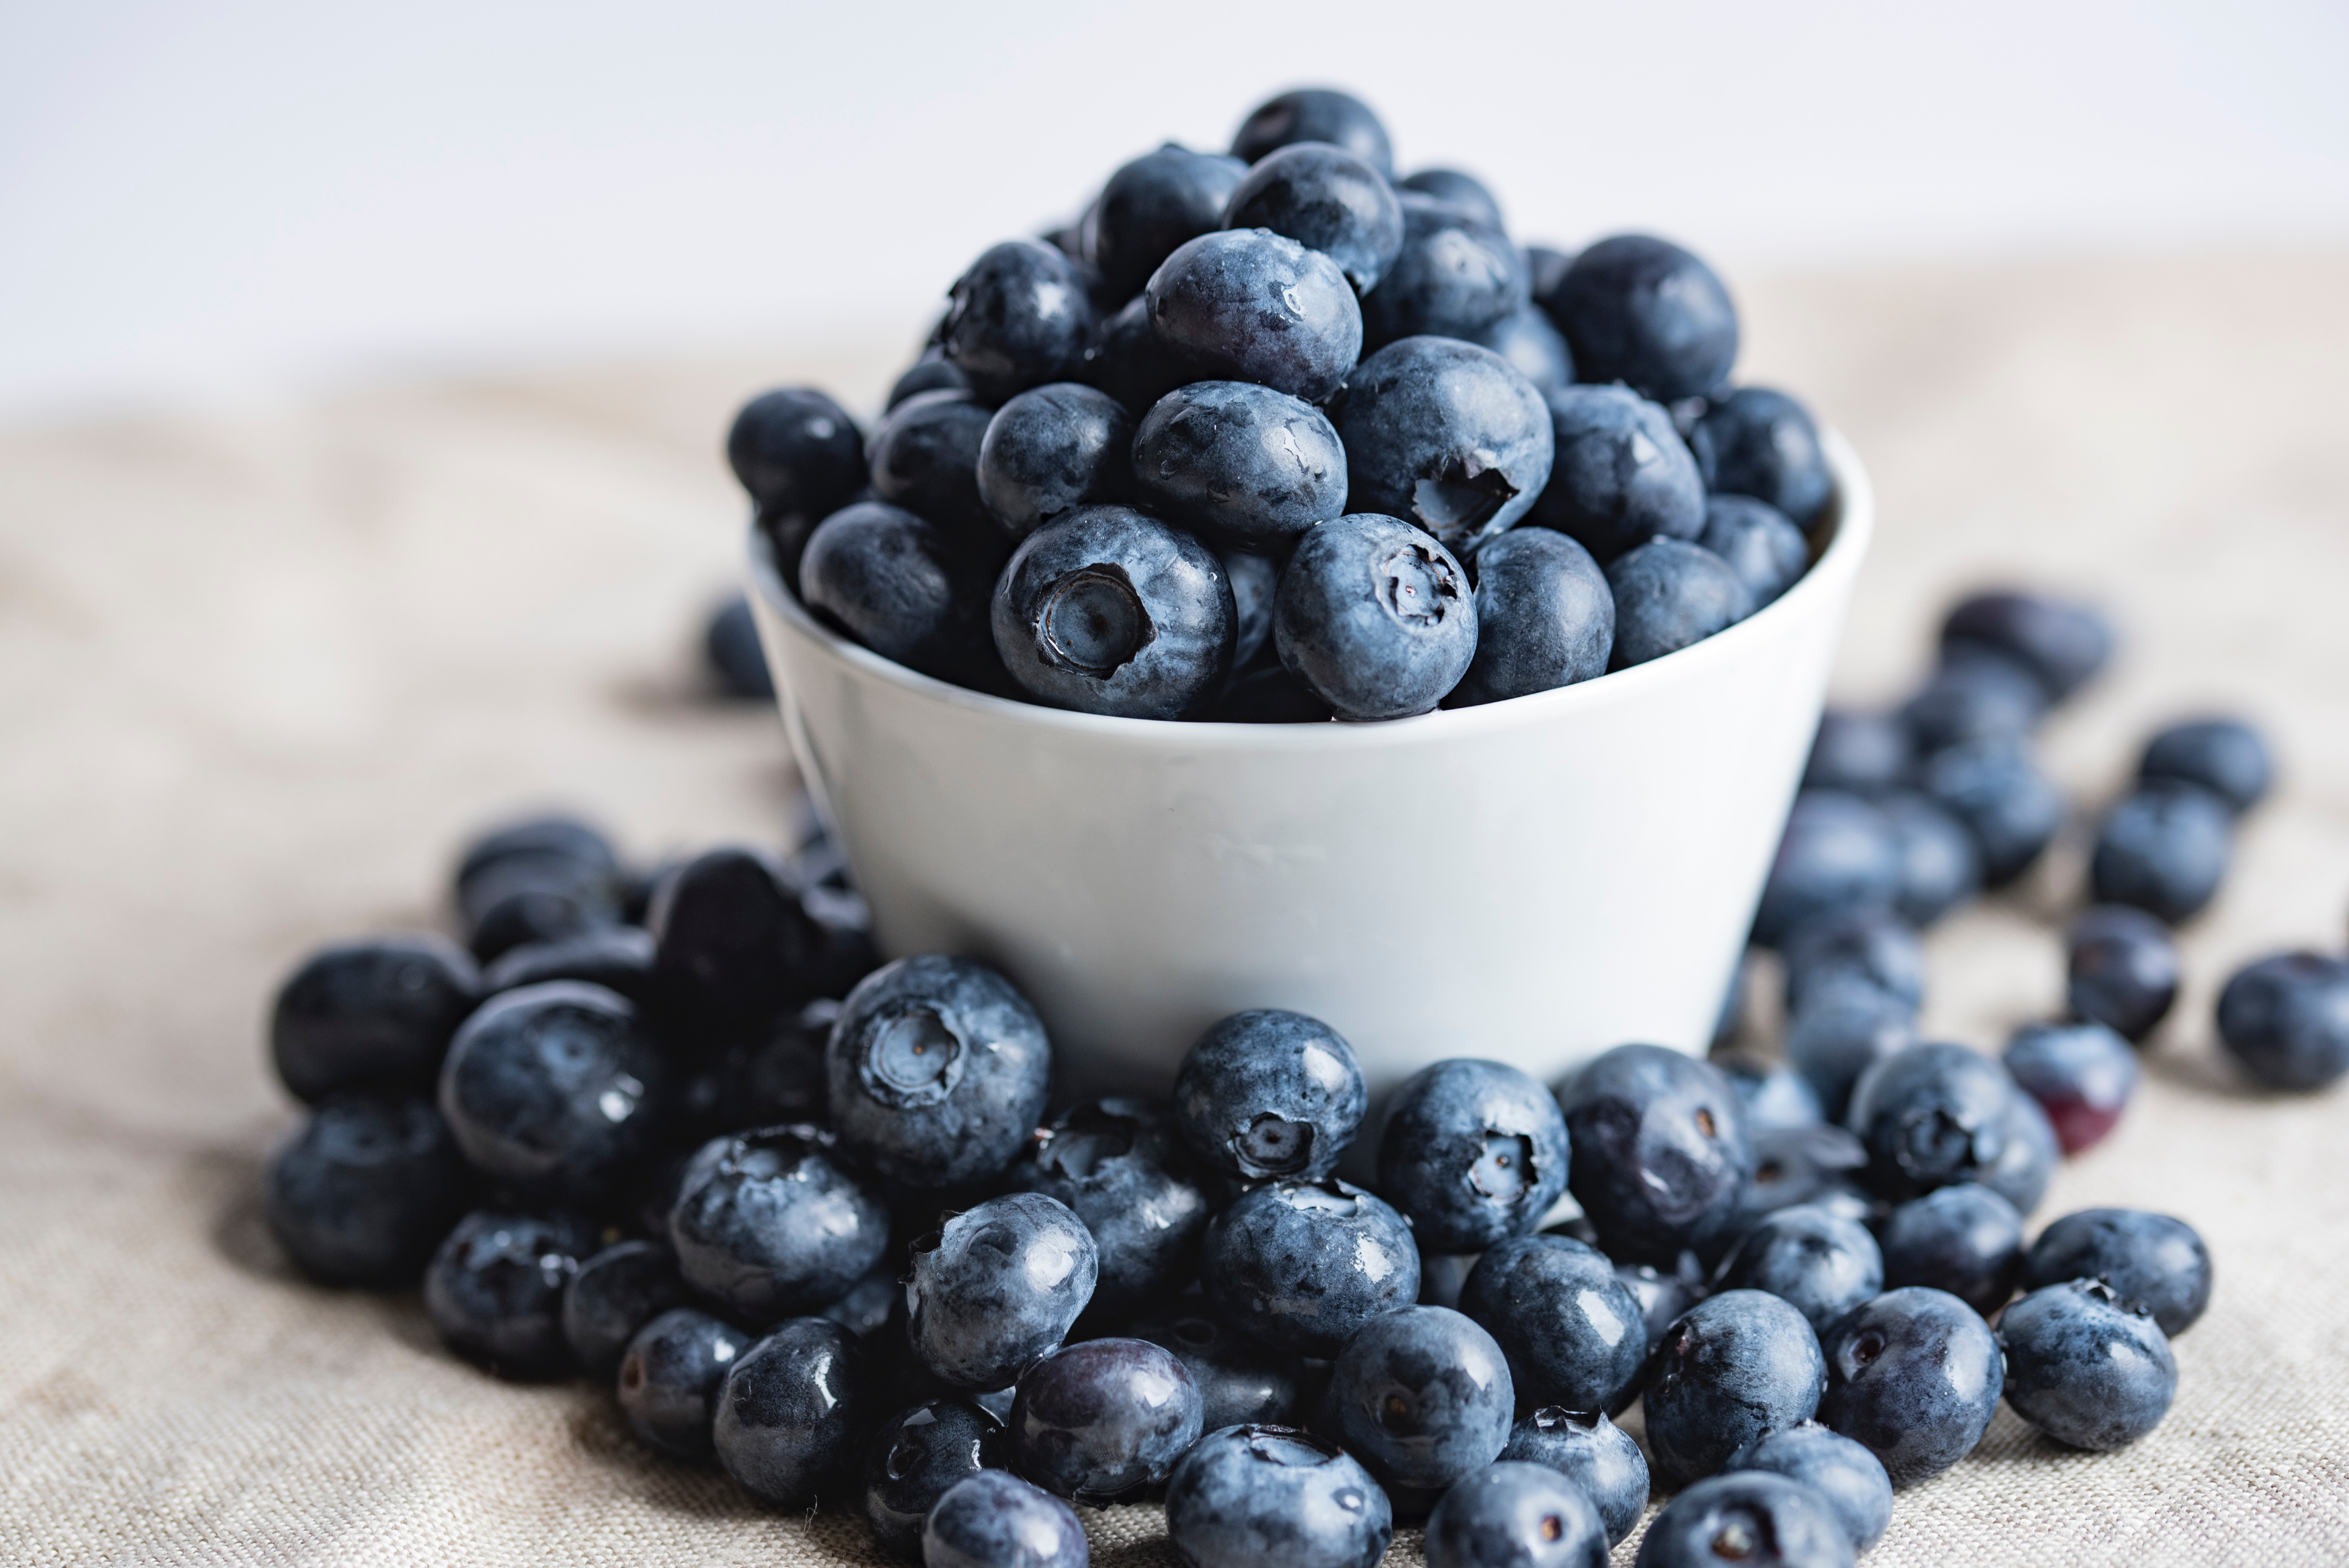 A cup with blueberries